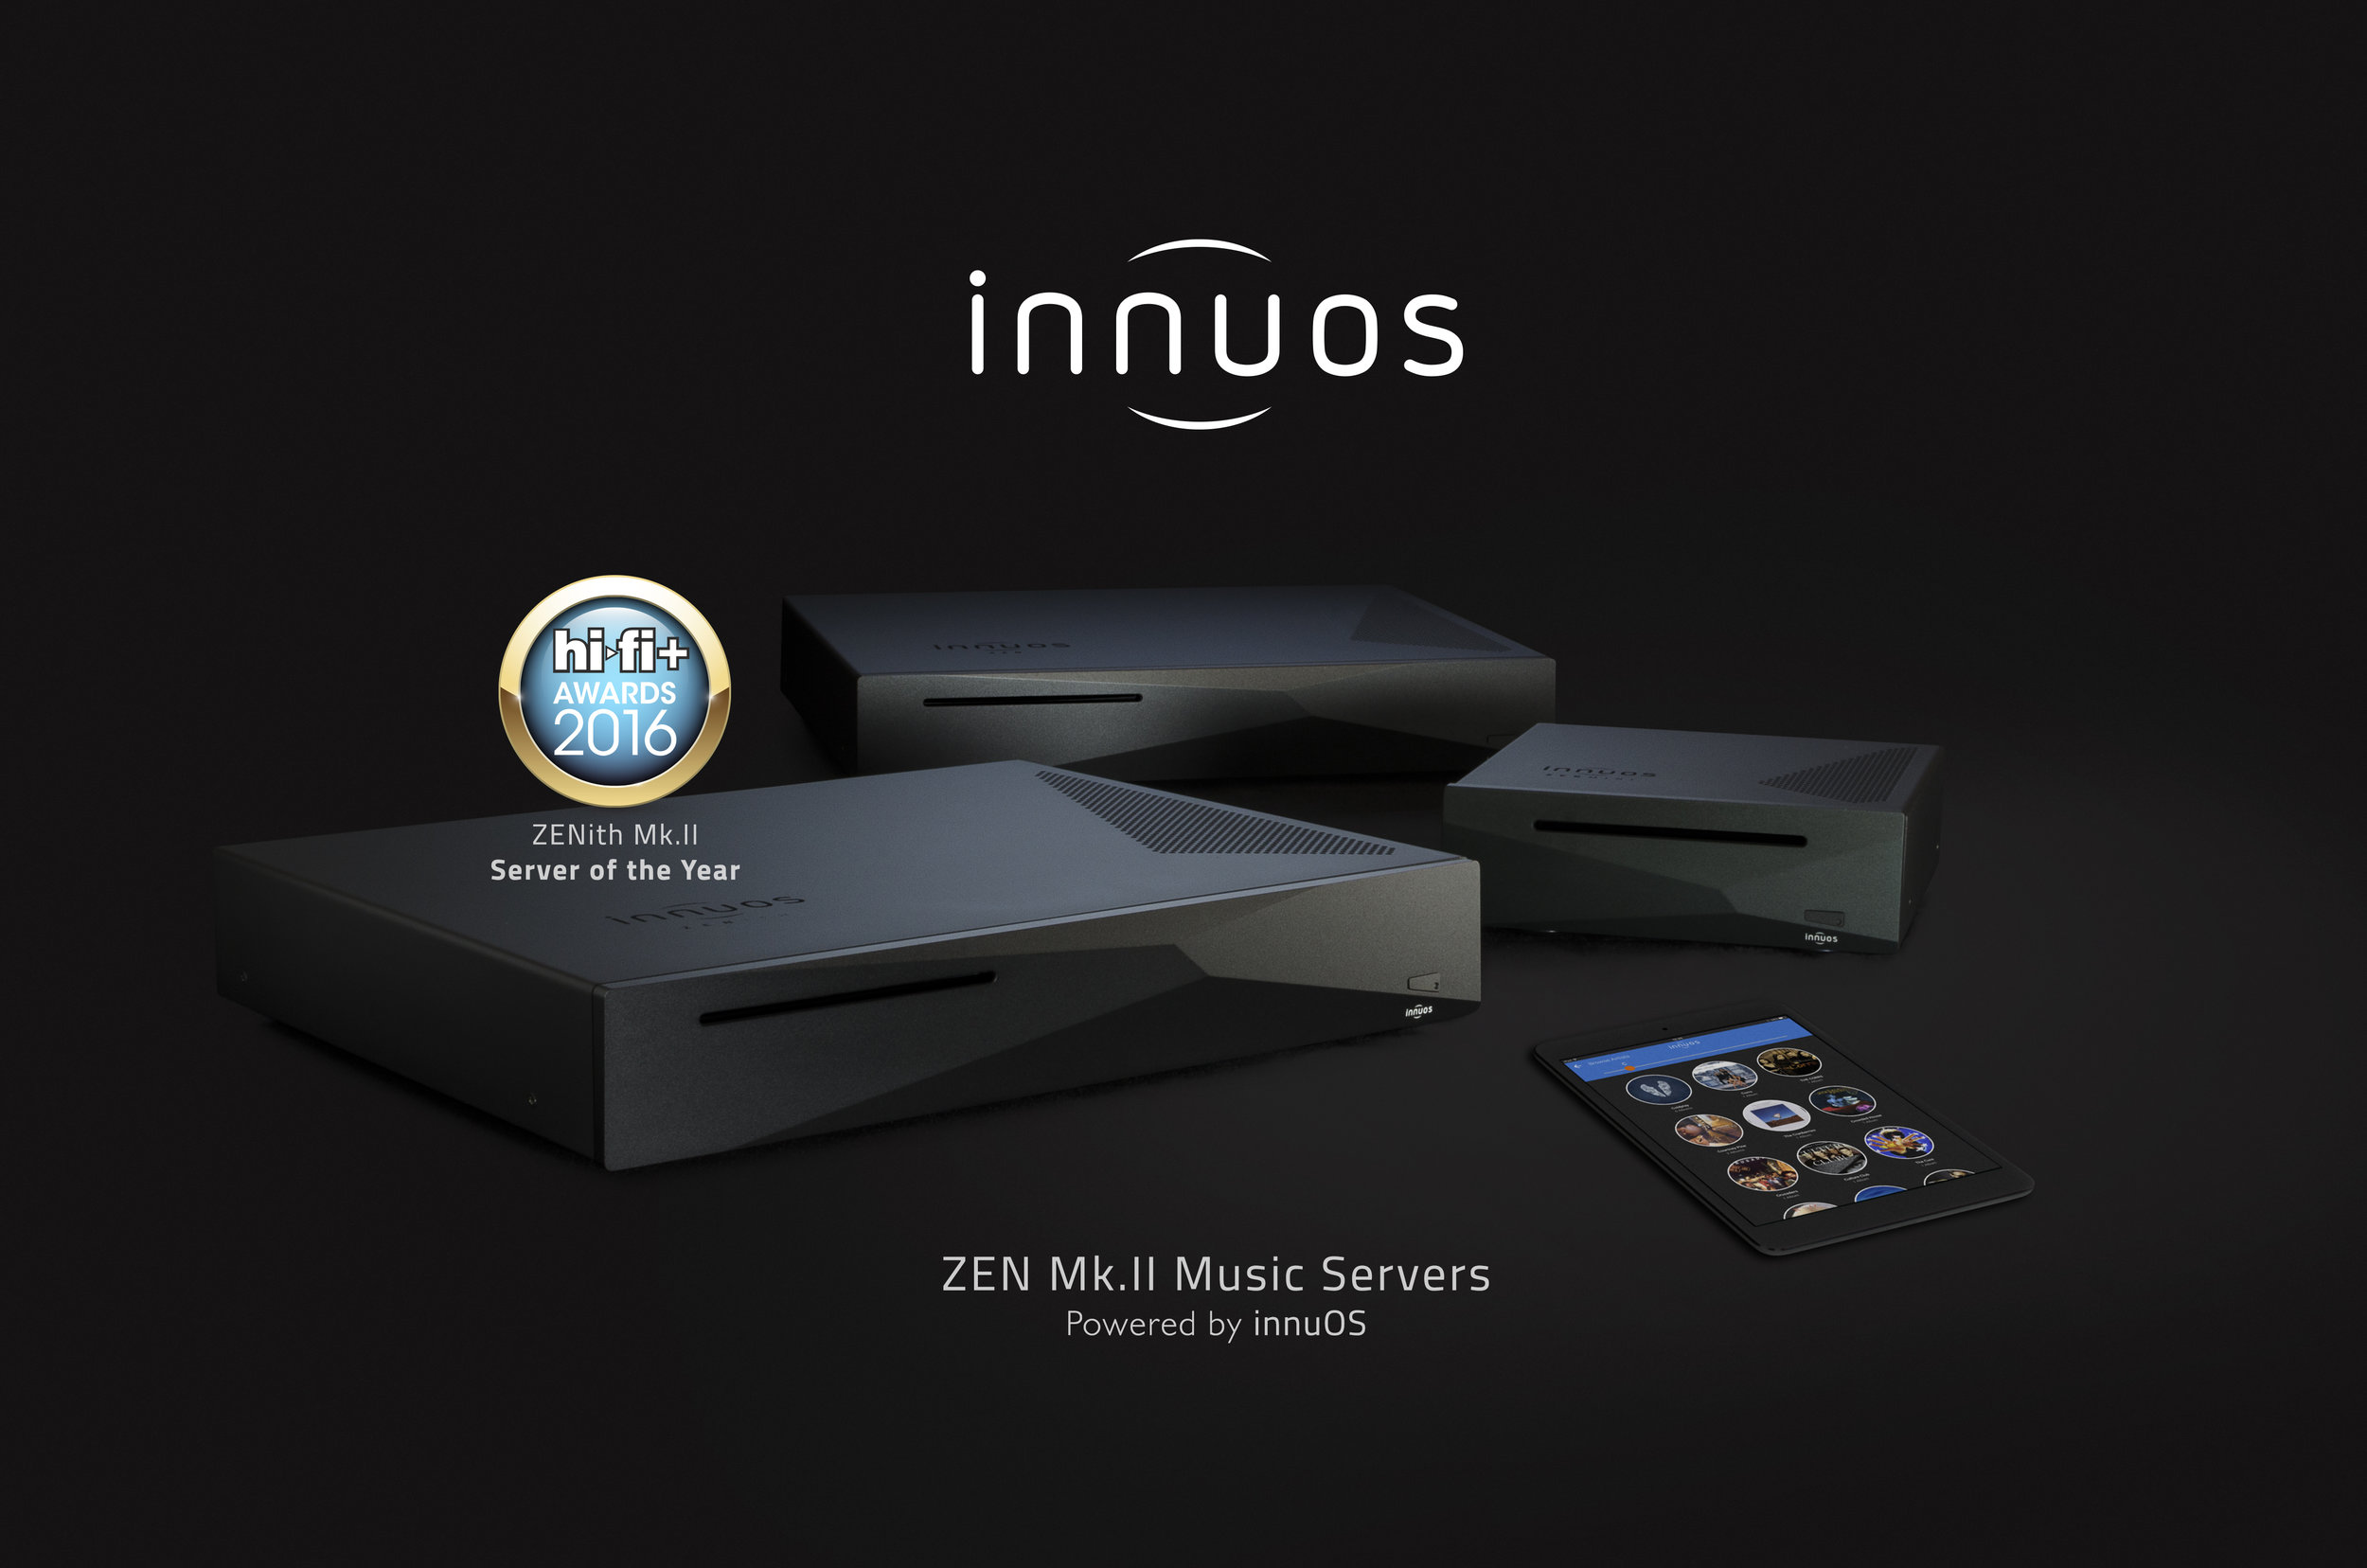 Zen Mk2 Music Servers Powered by innuOS - award-large.jpg